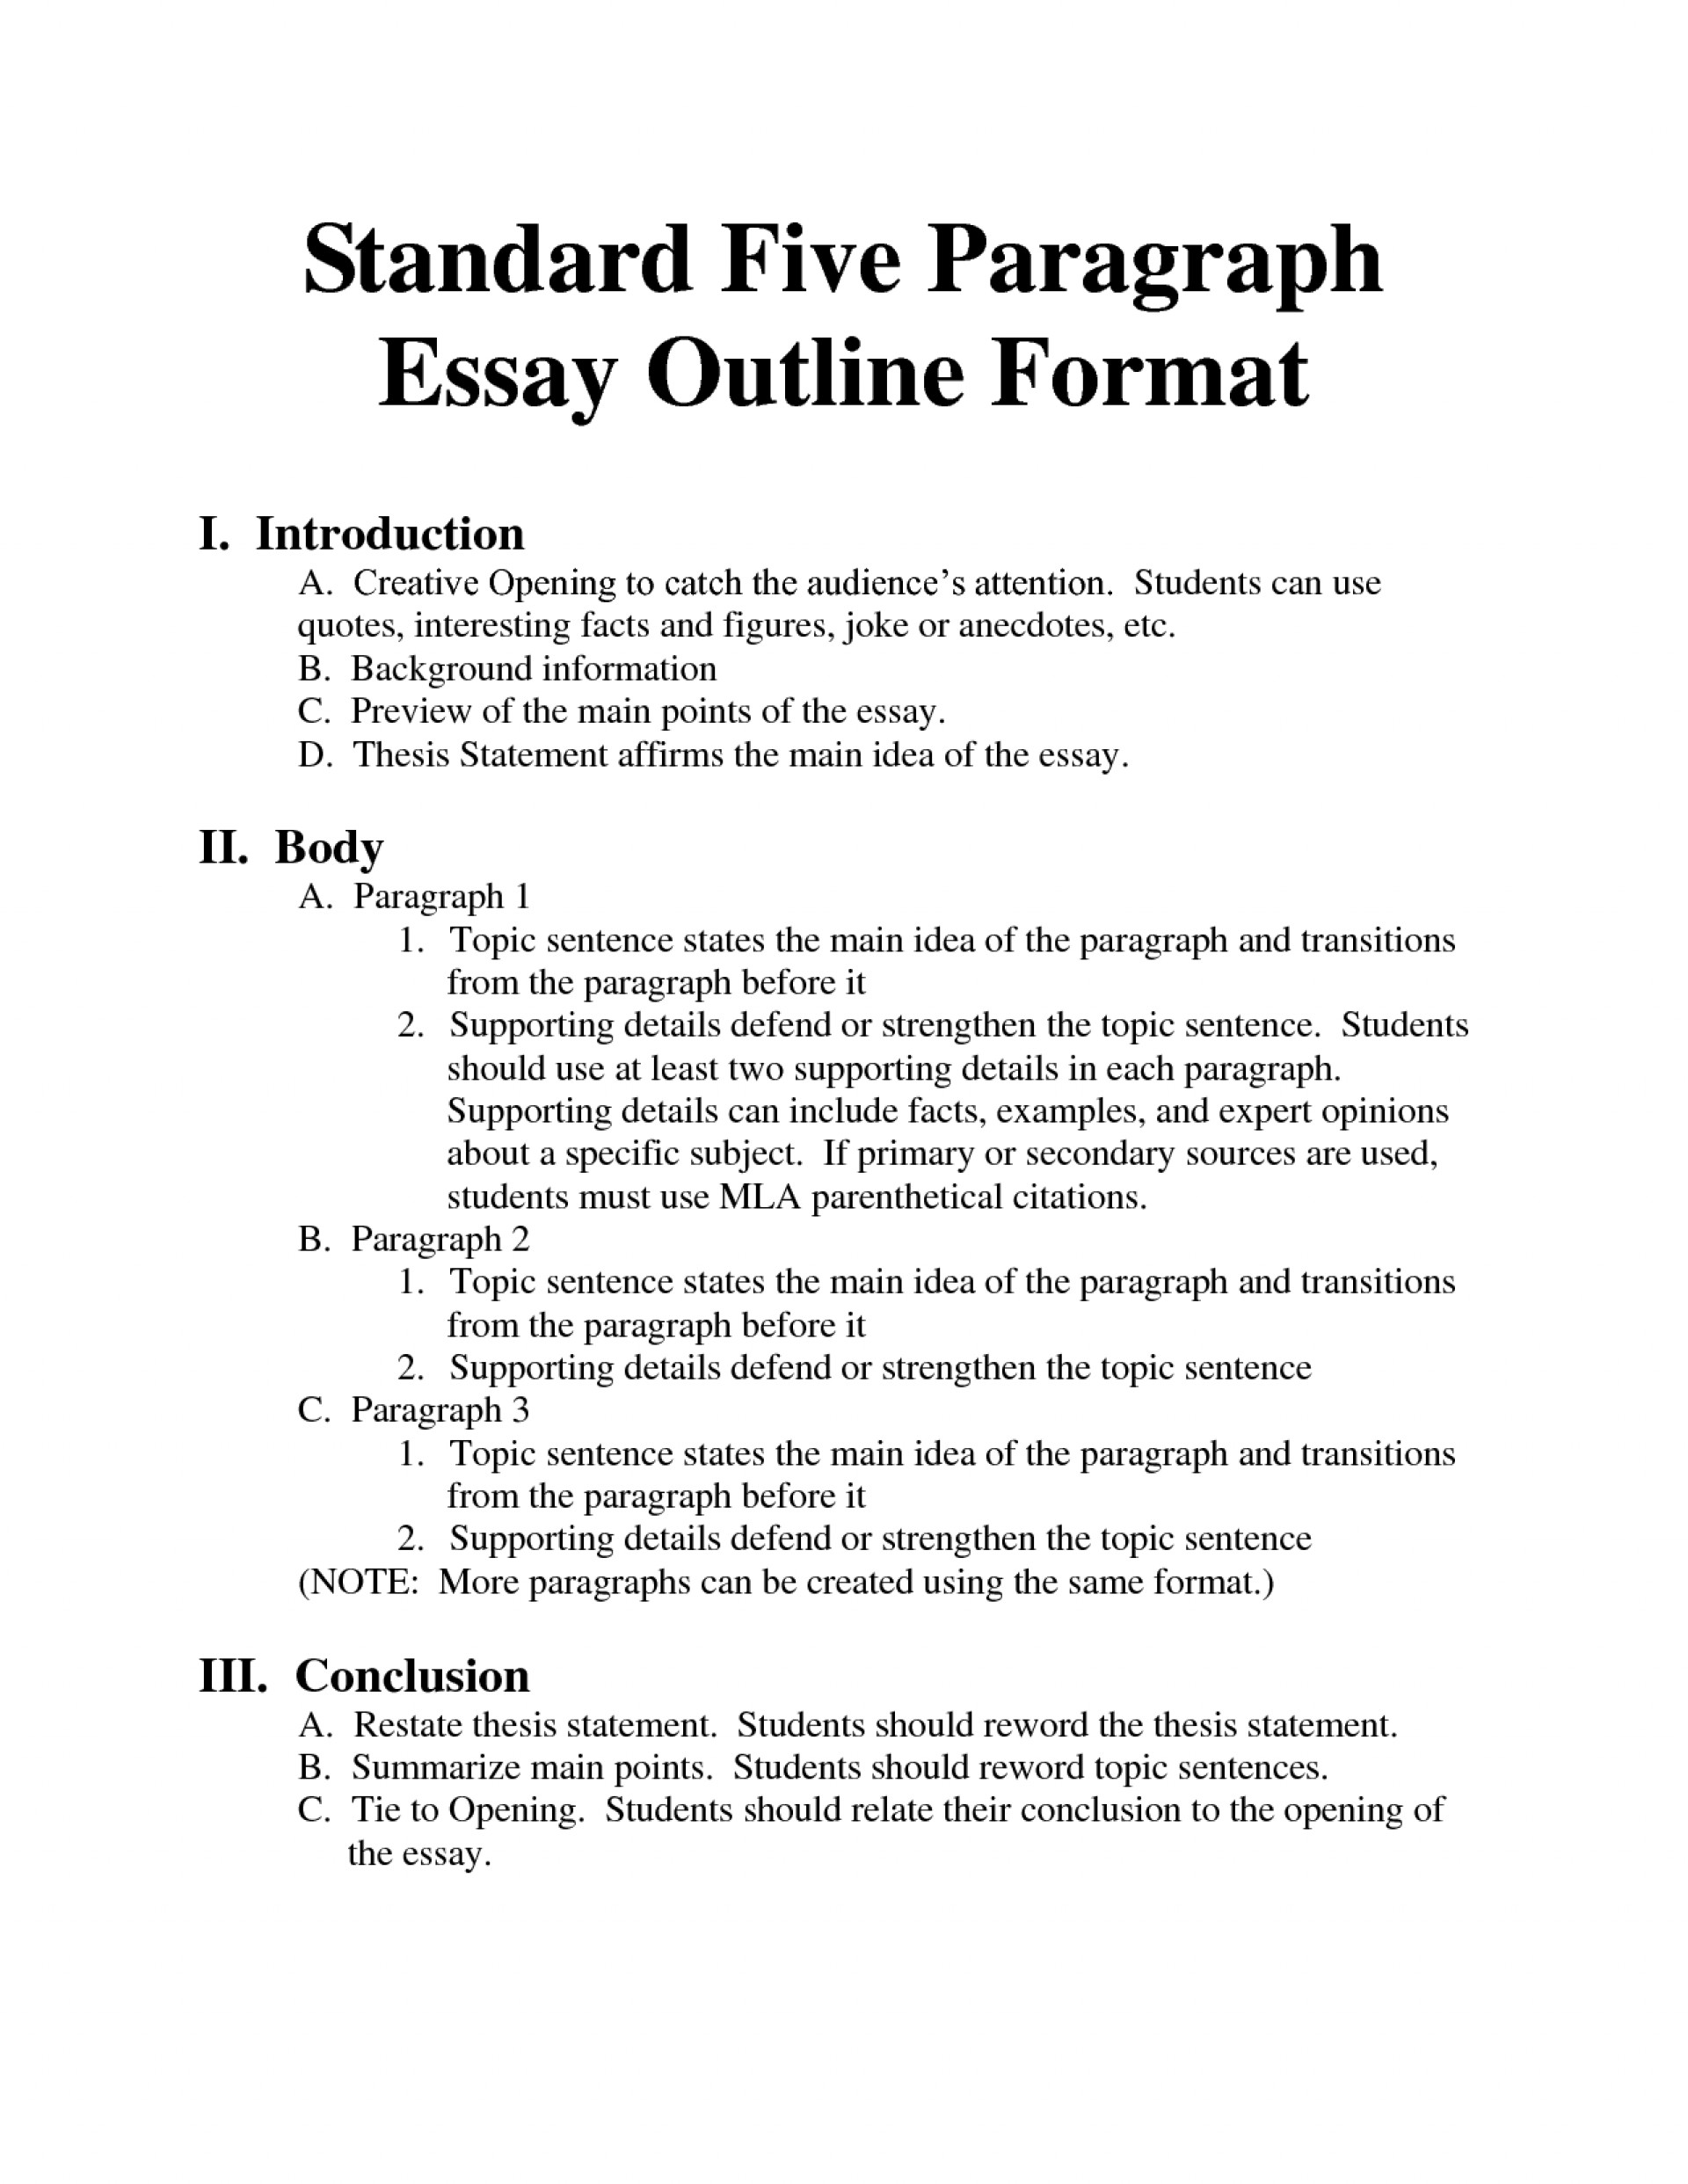 025 Essay Empire Research Unforgettable Paper Reviews 1920